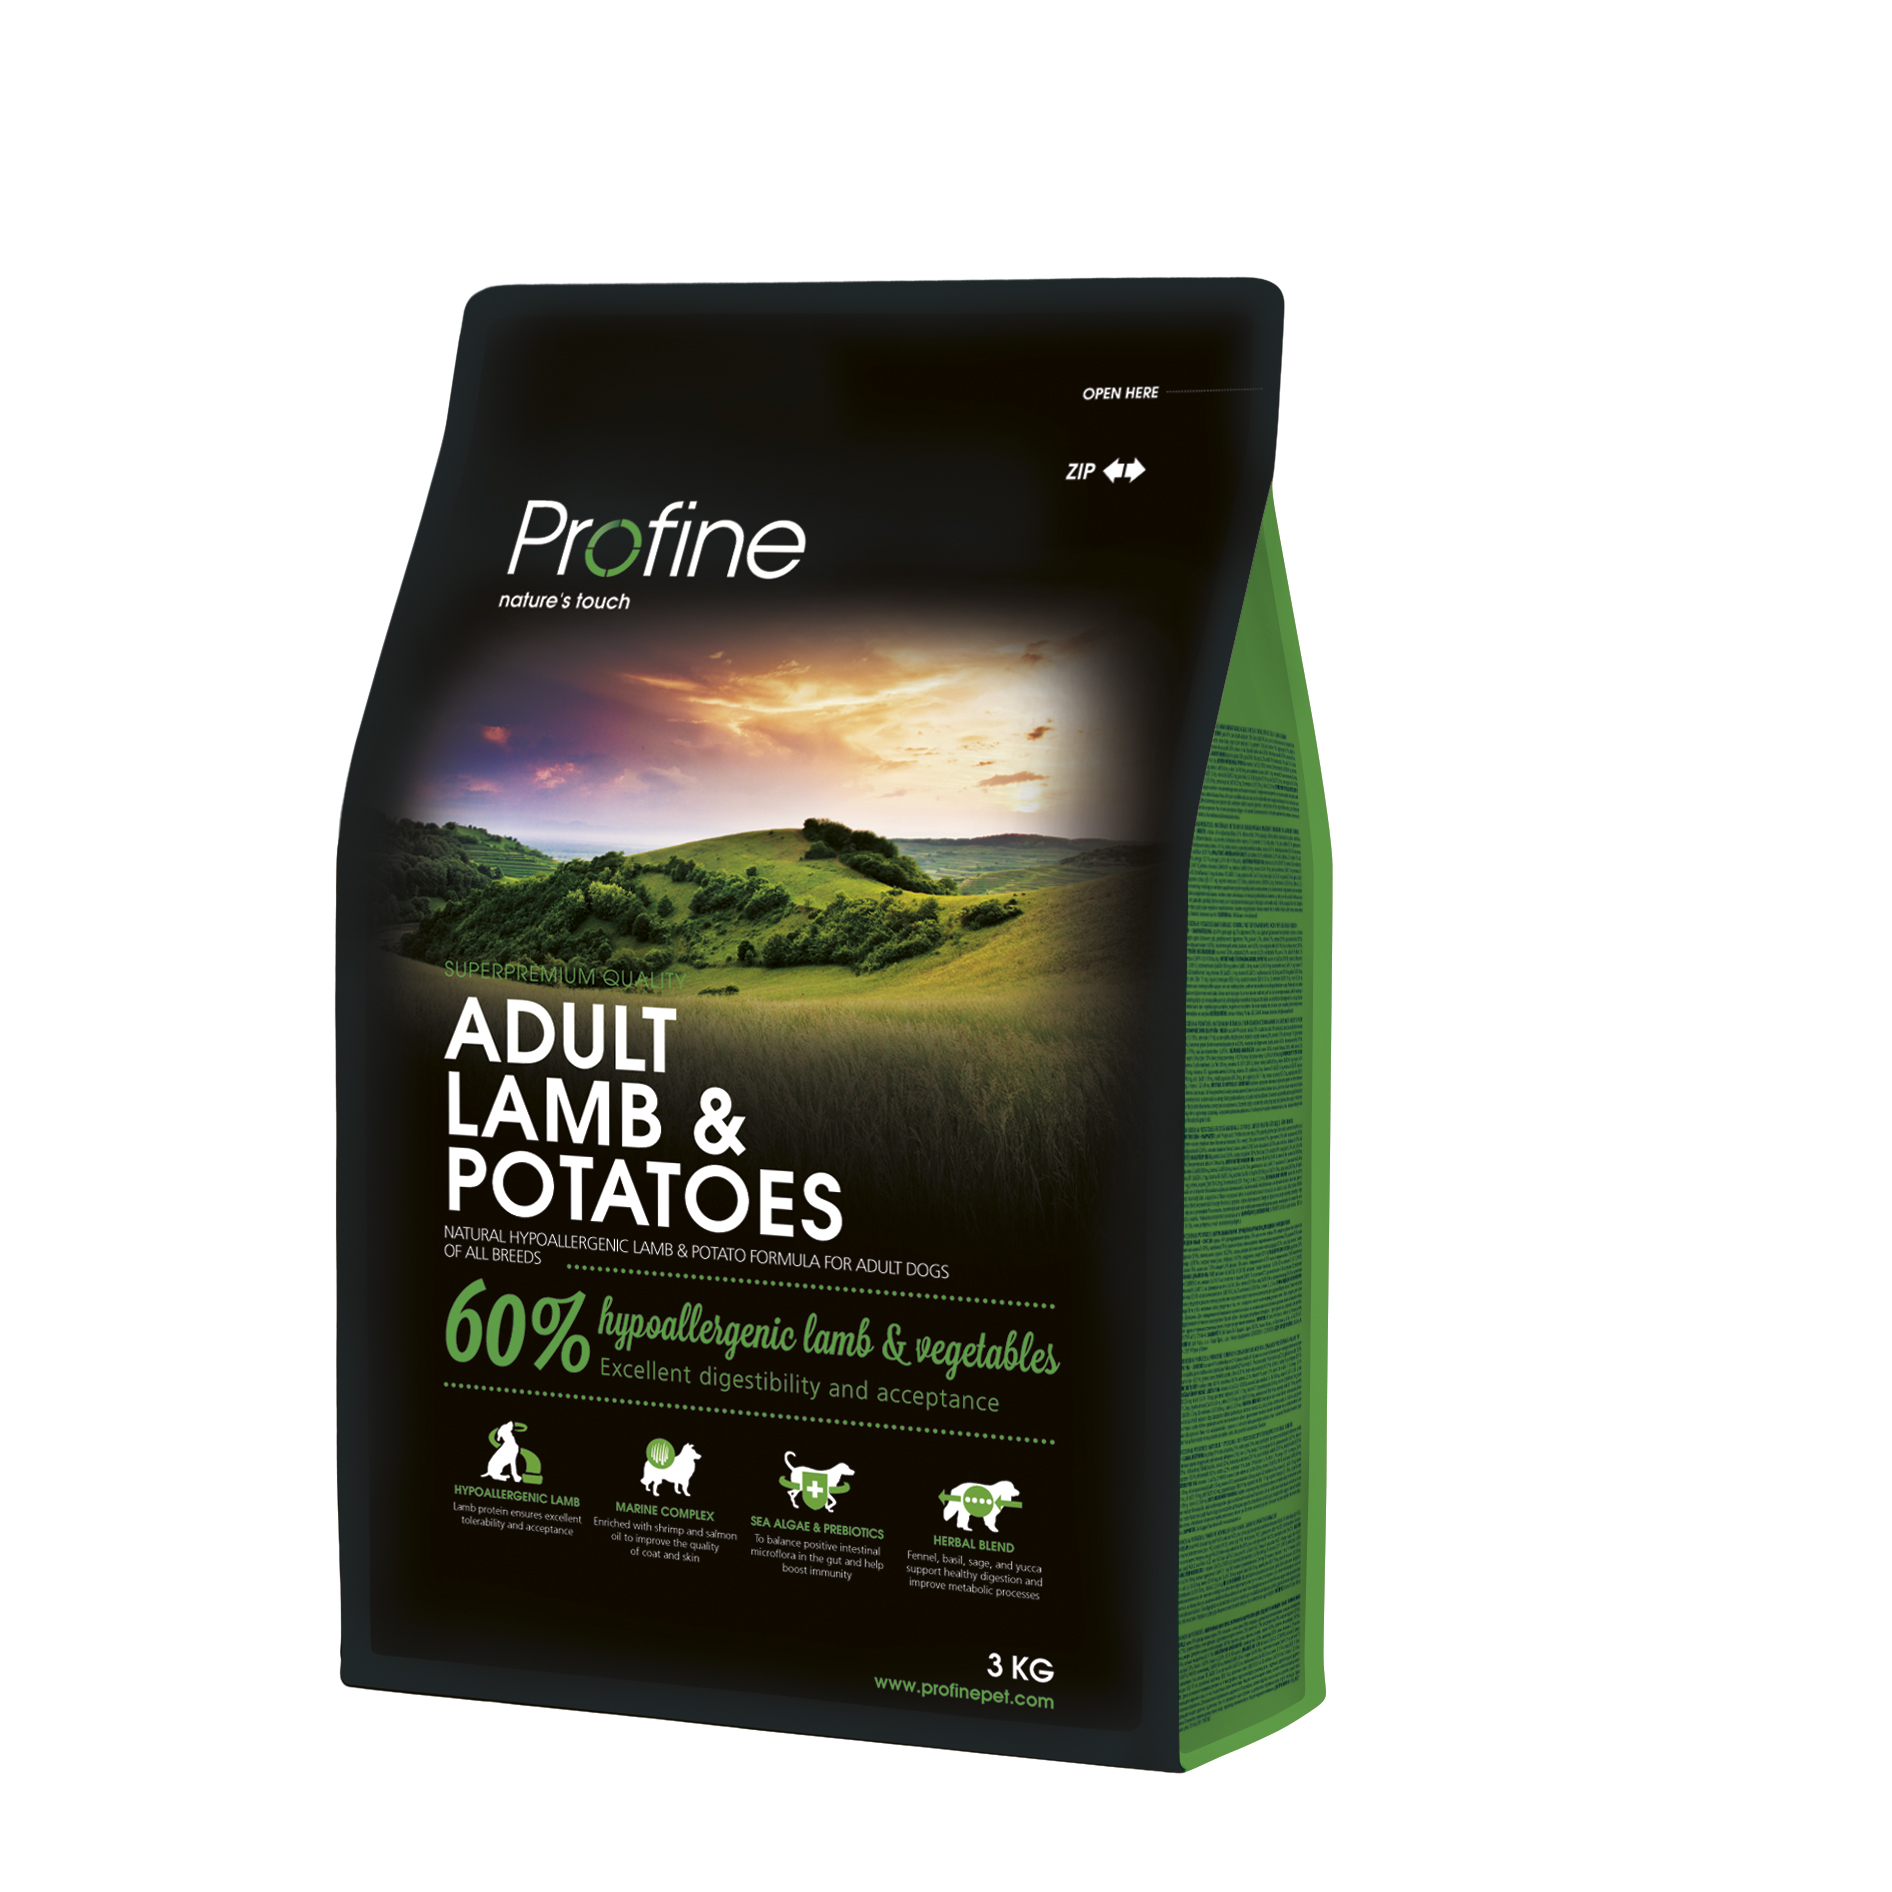 Profine Adult Lamb & Potatoes 3kg